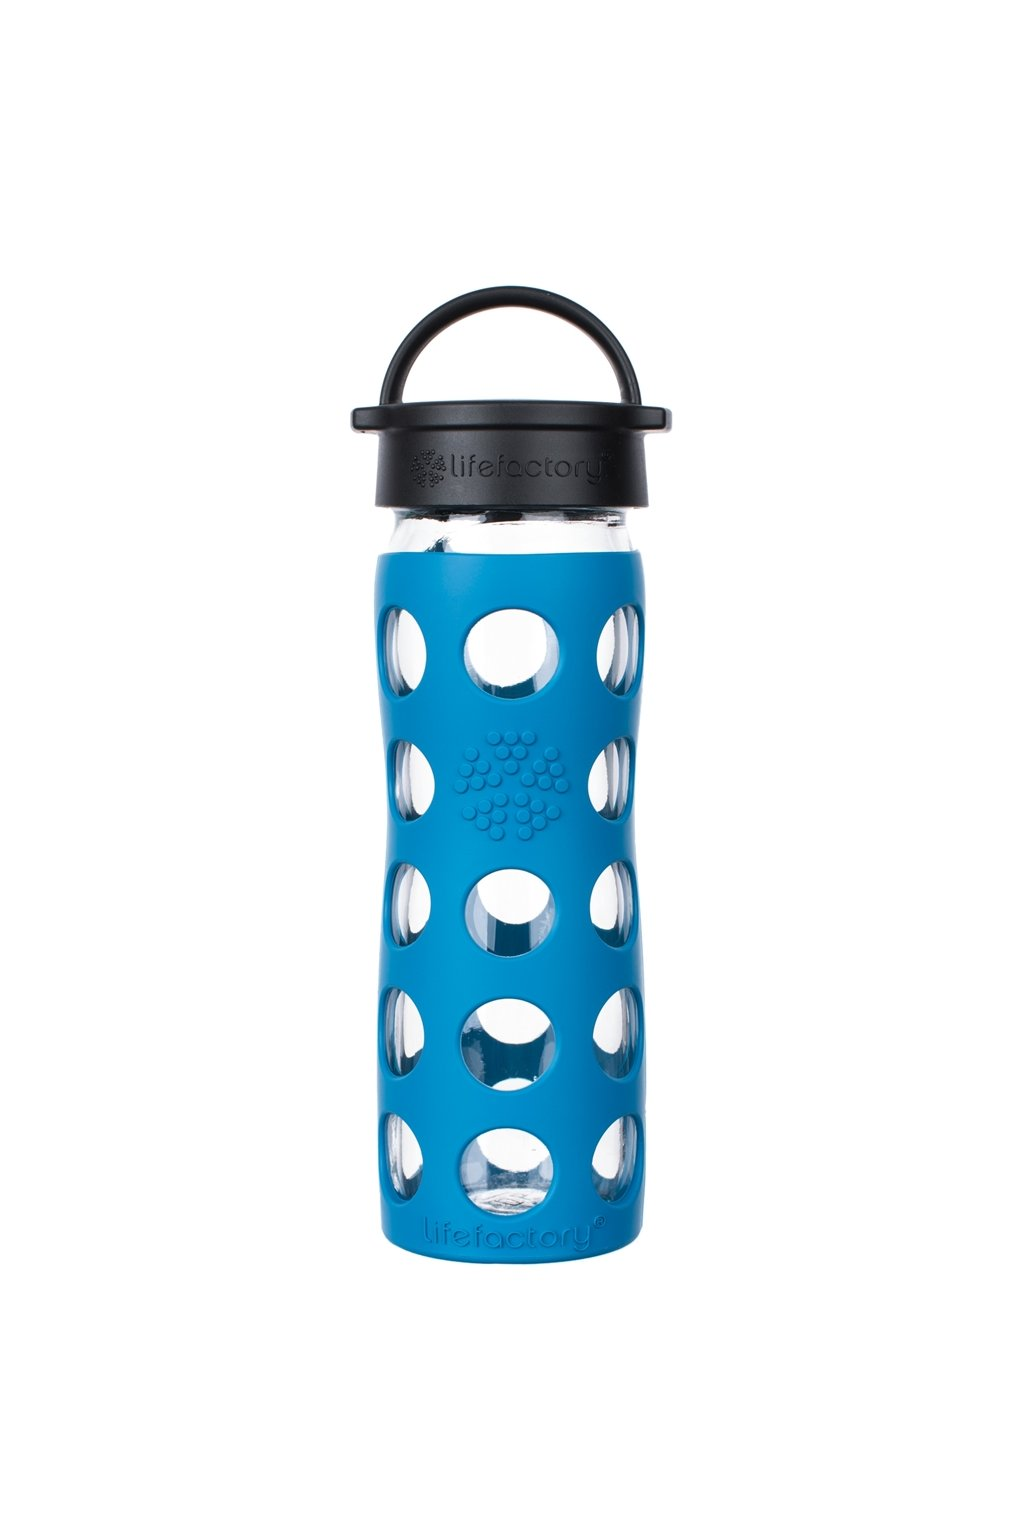 Lifefactory sklenena flasa na vodu 475 ml teal lake